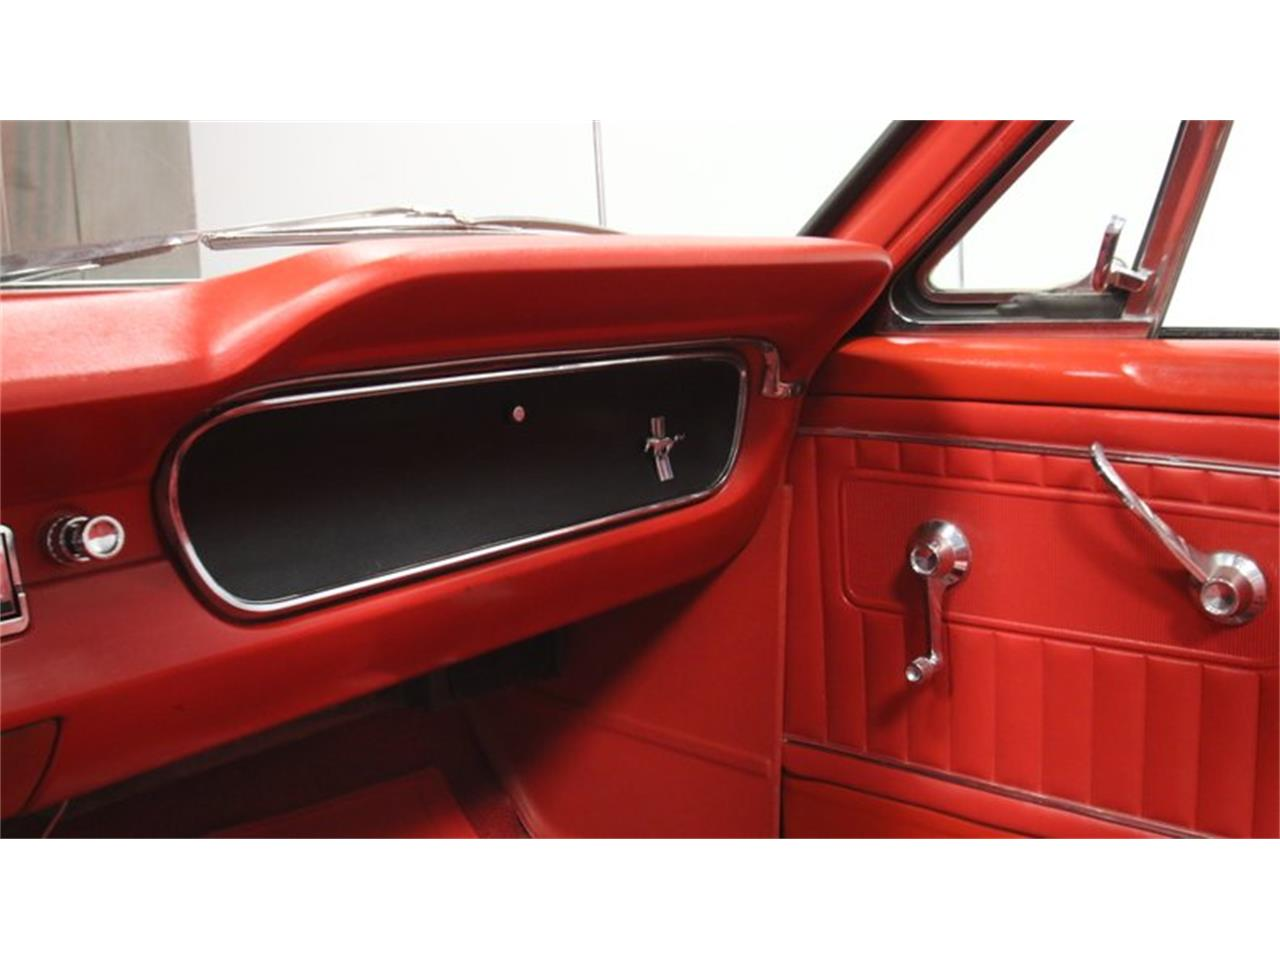 Large Picture of Classic '64 Mustang located in Georgia Offered by Streetside Classics - Atlanta - QA2K